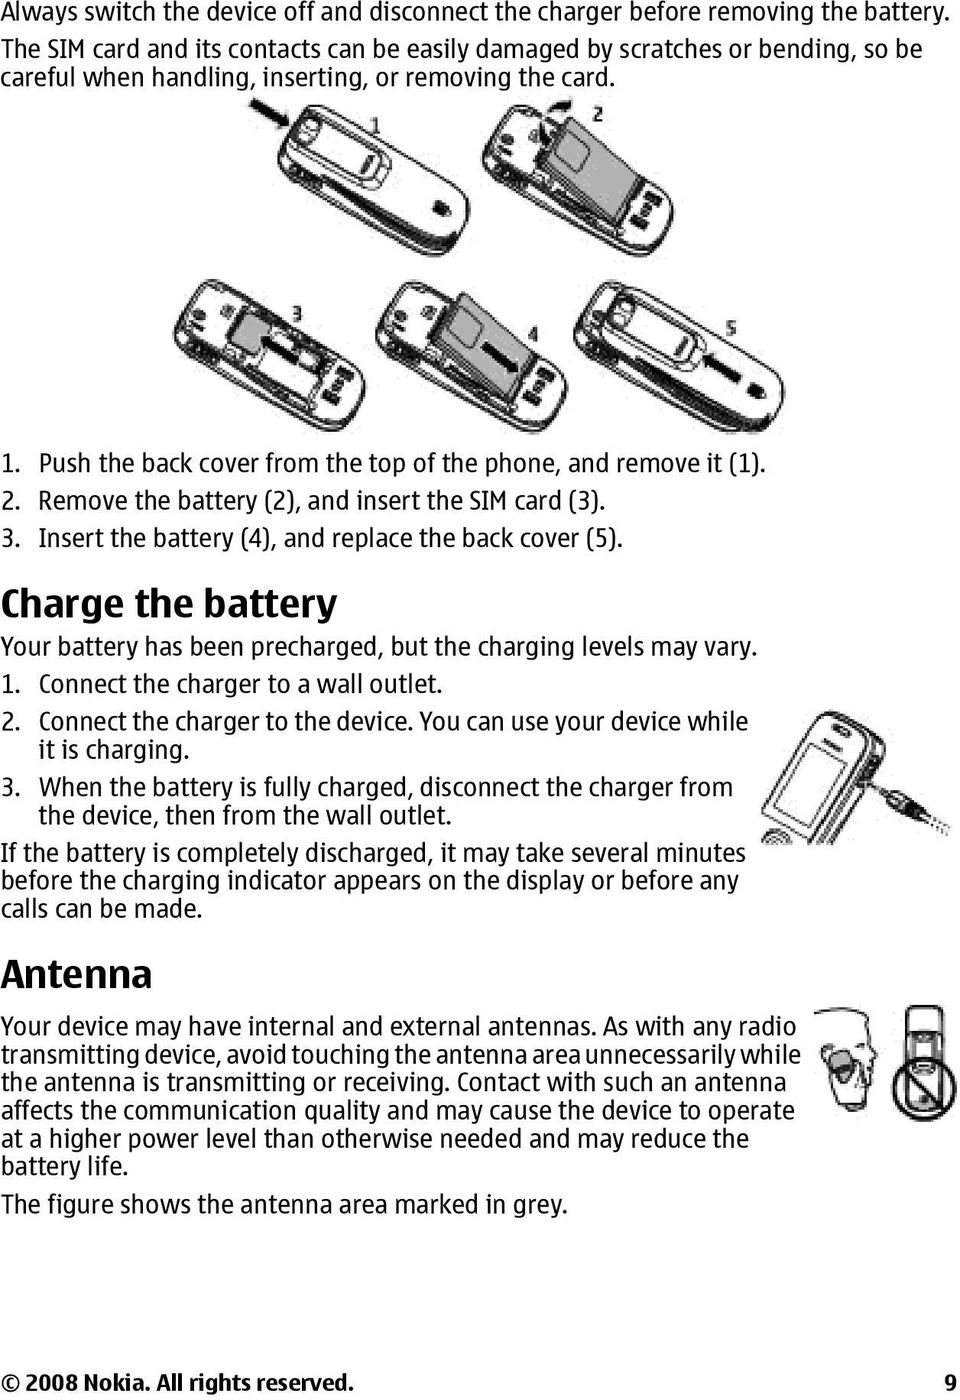 Push the back cover from the top of the phone, and remove it (1). 2. Remove the battery (2), and insert the SIM card (3). 3. Insert the battery (4), and replace the back cover (5).